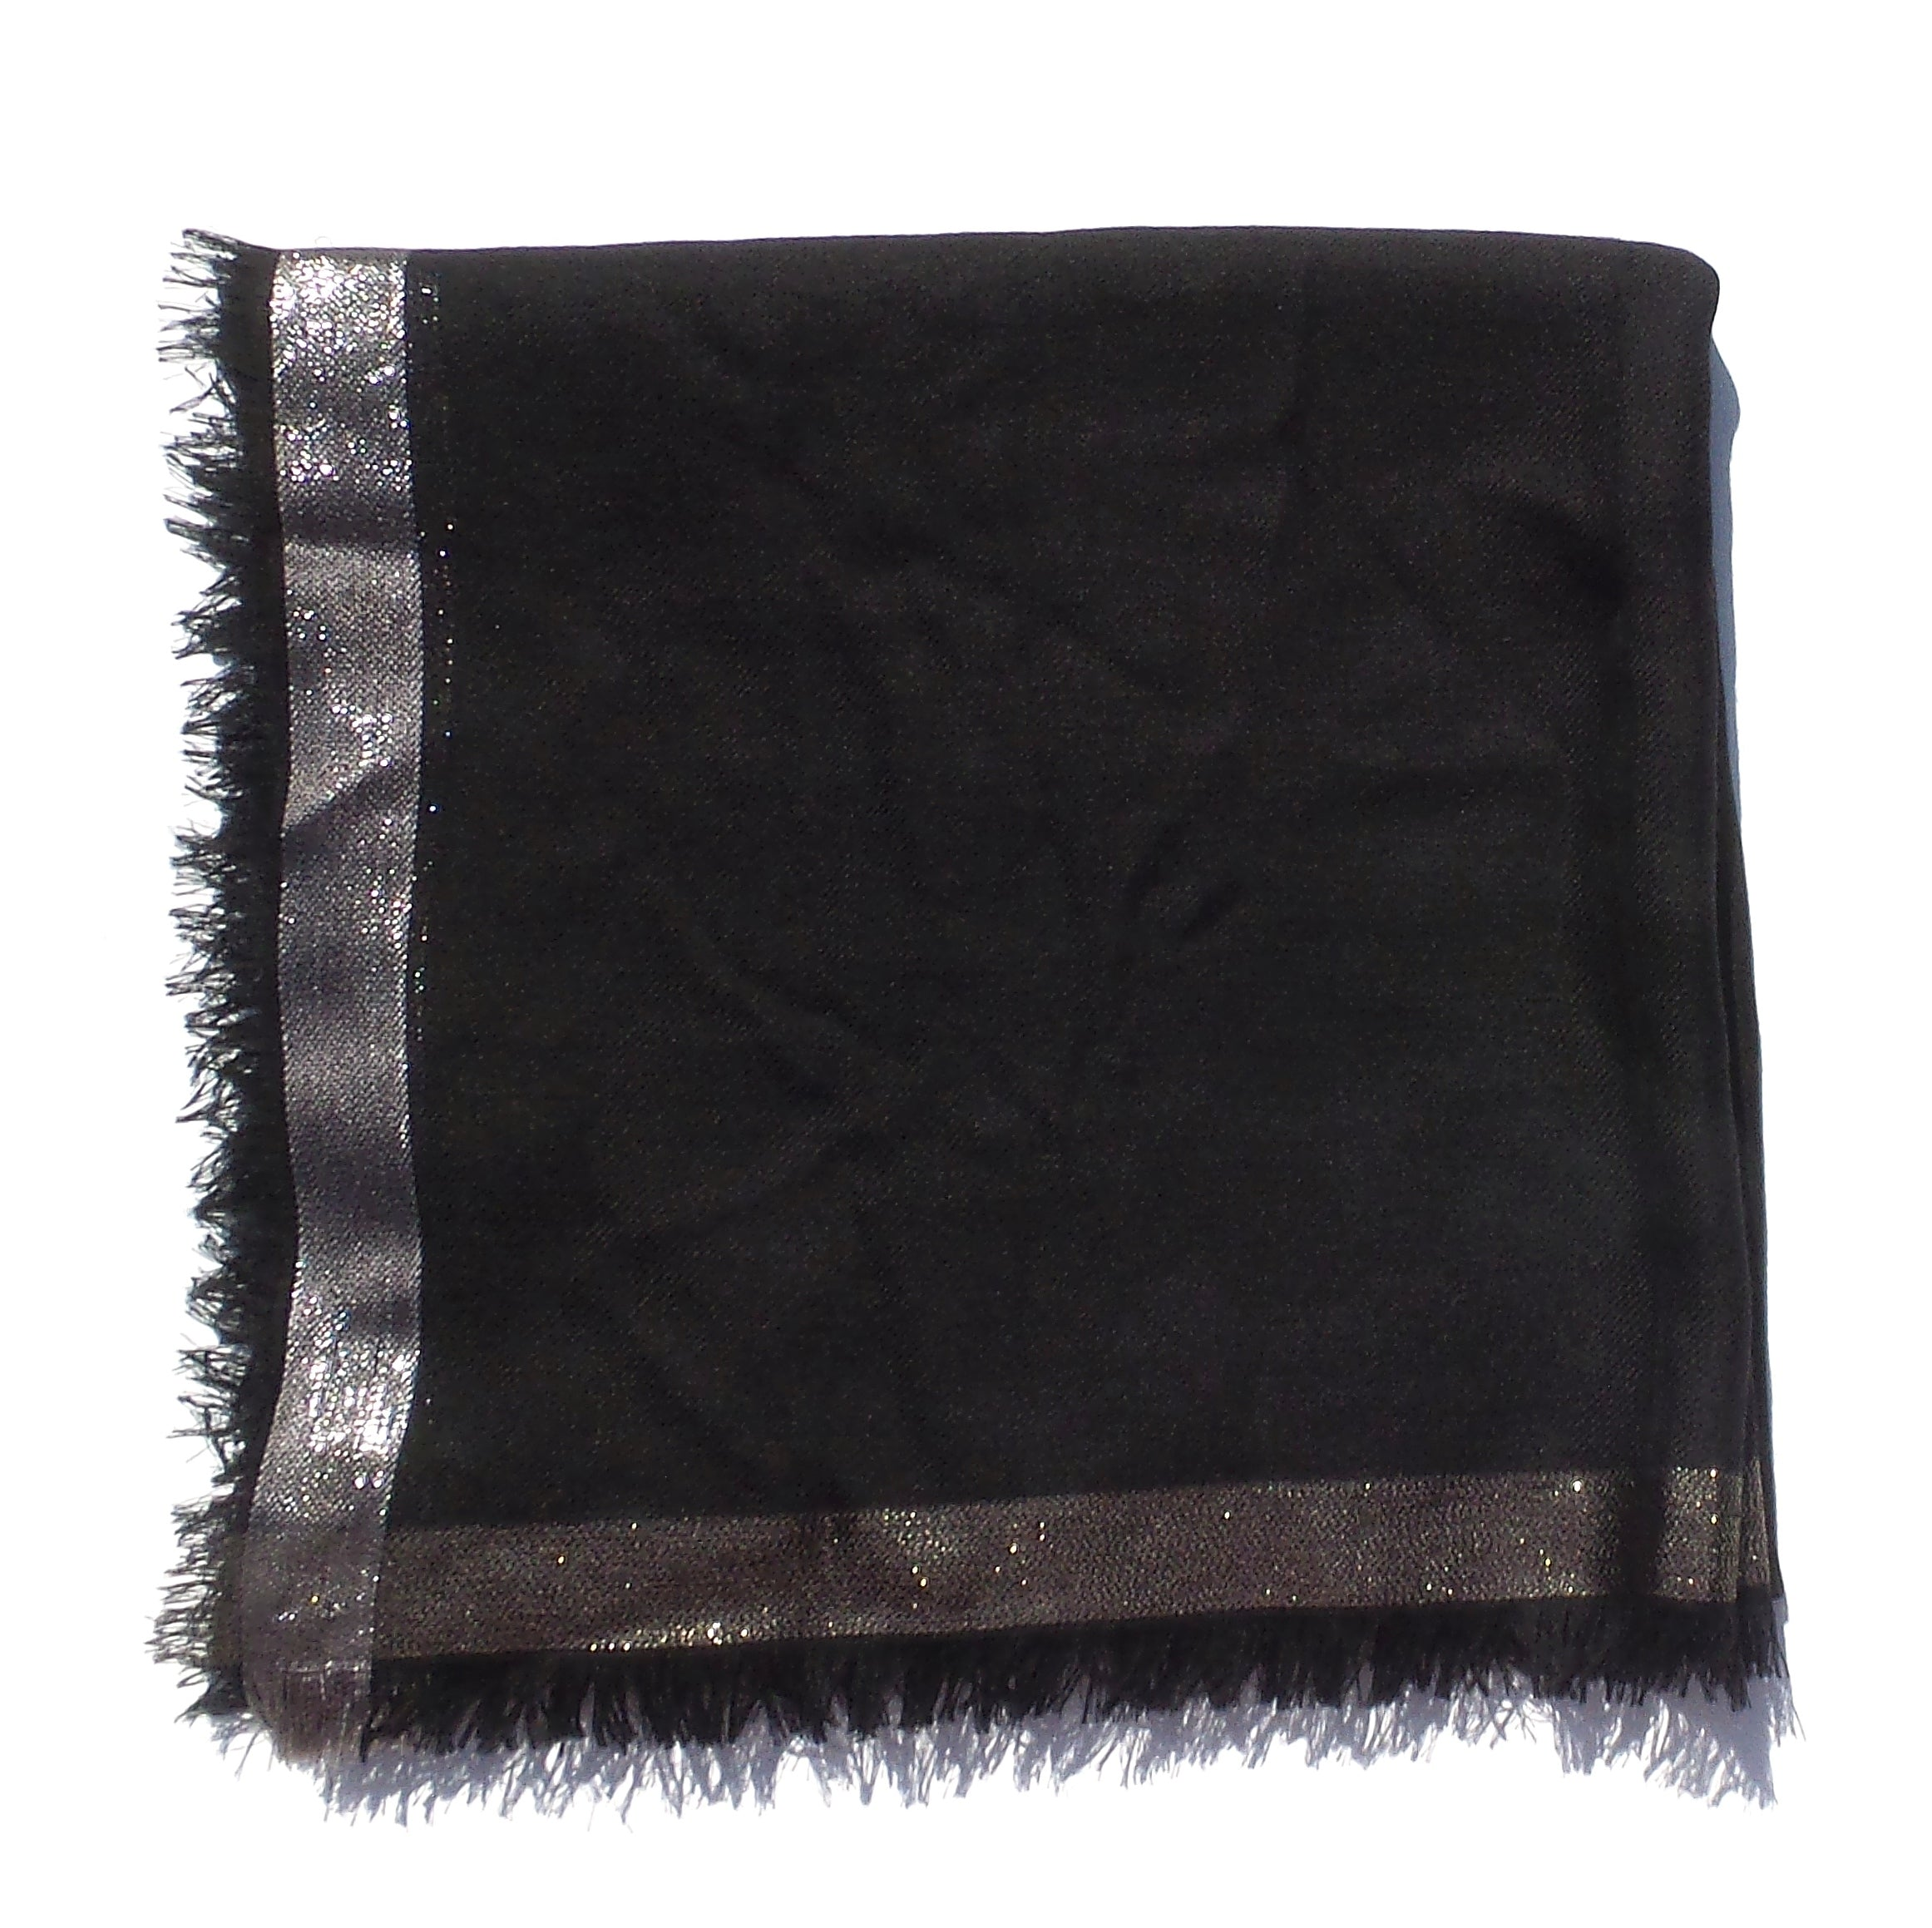 'Sold' LORO PIANA Quadrata Luna Black Metallic Edge Soffio Cashmere Silk Fringed Scarf